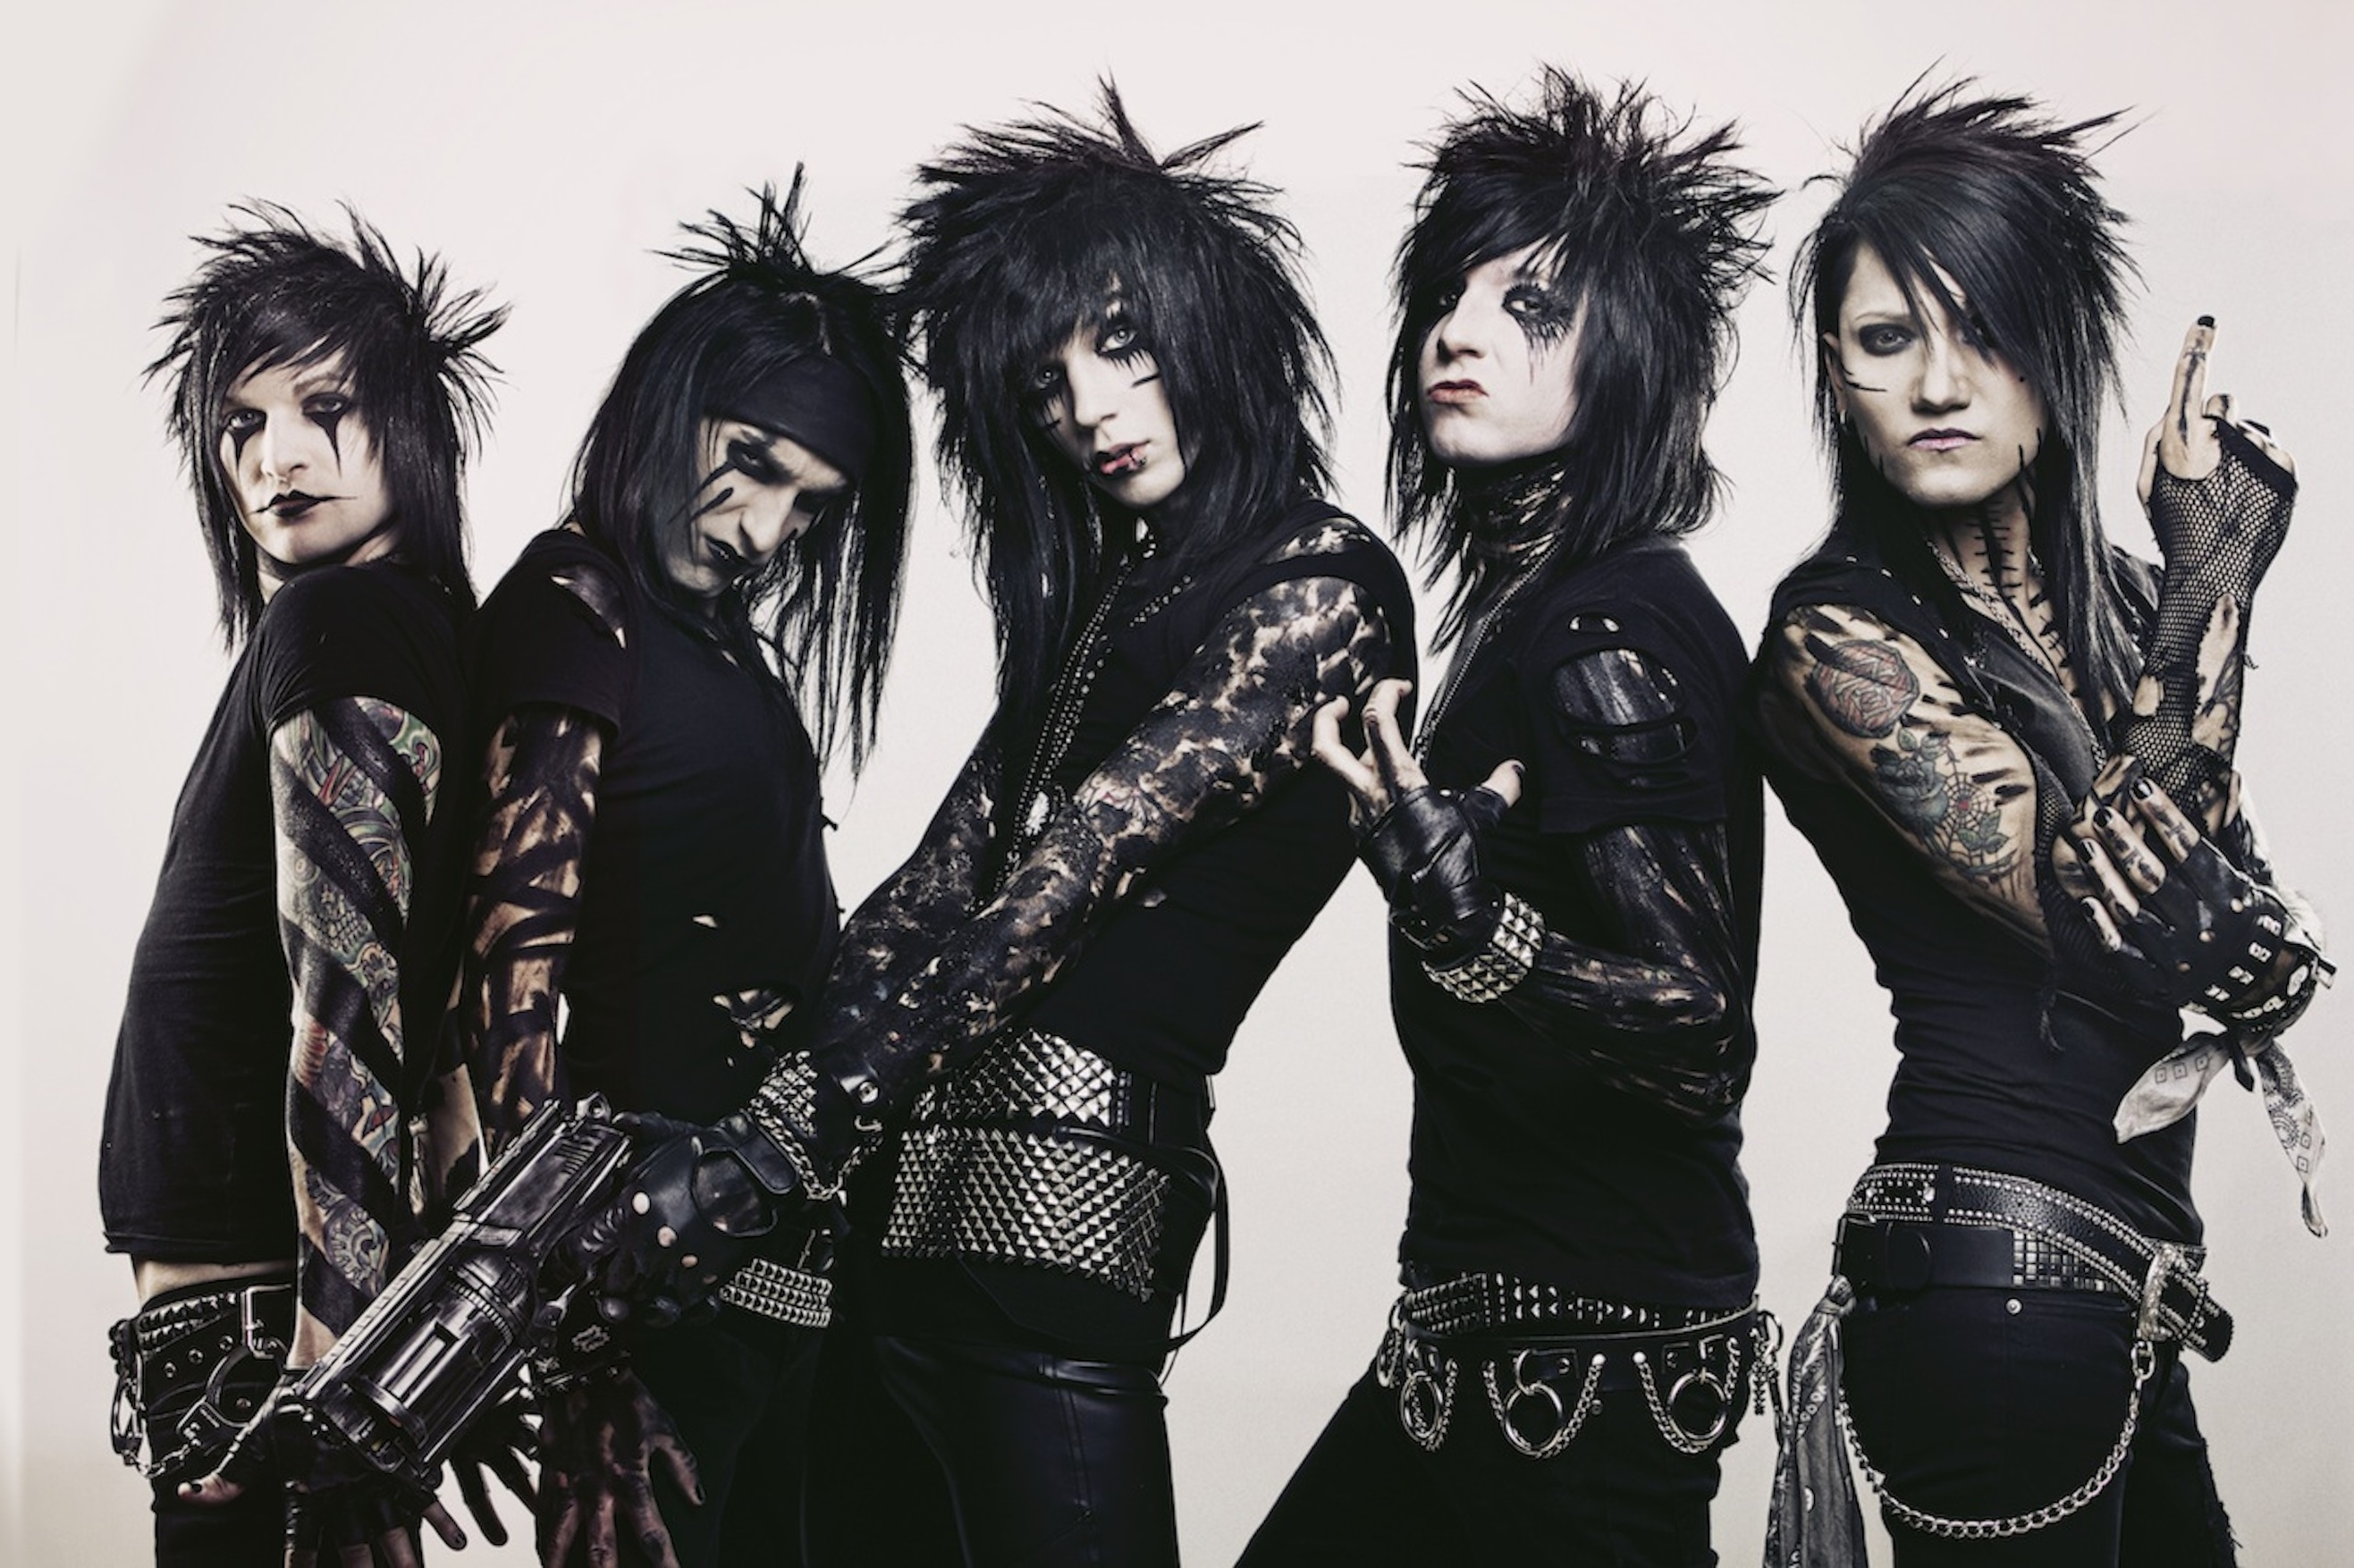 Veil Brides From 13